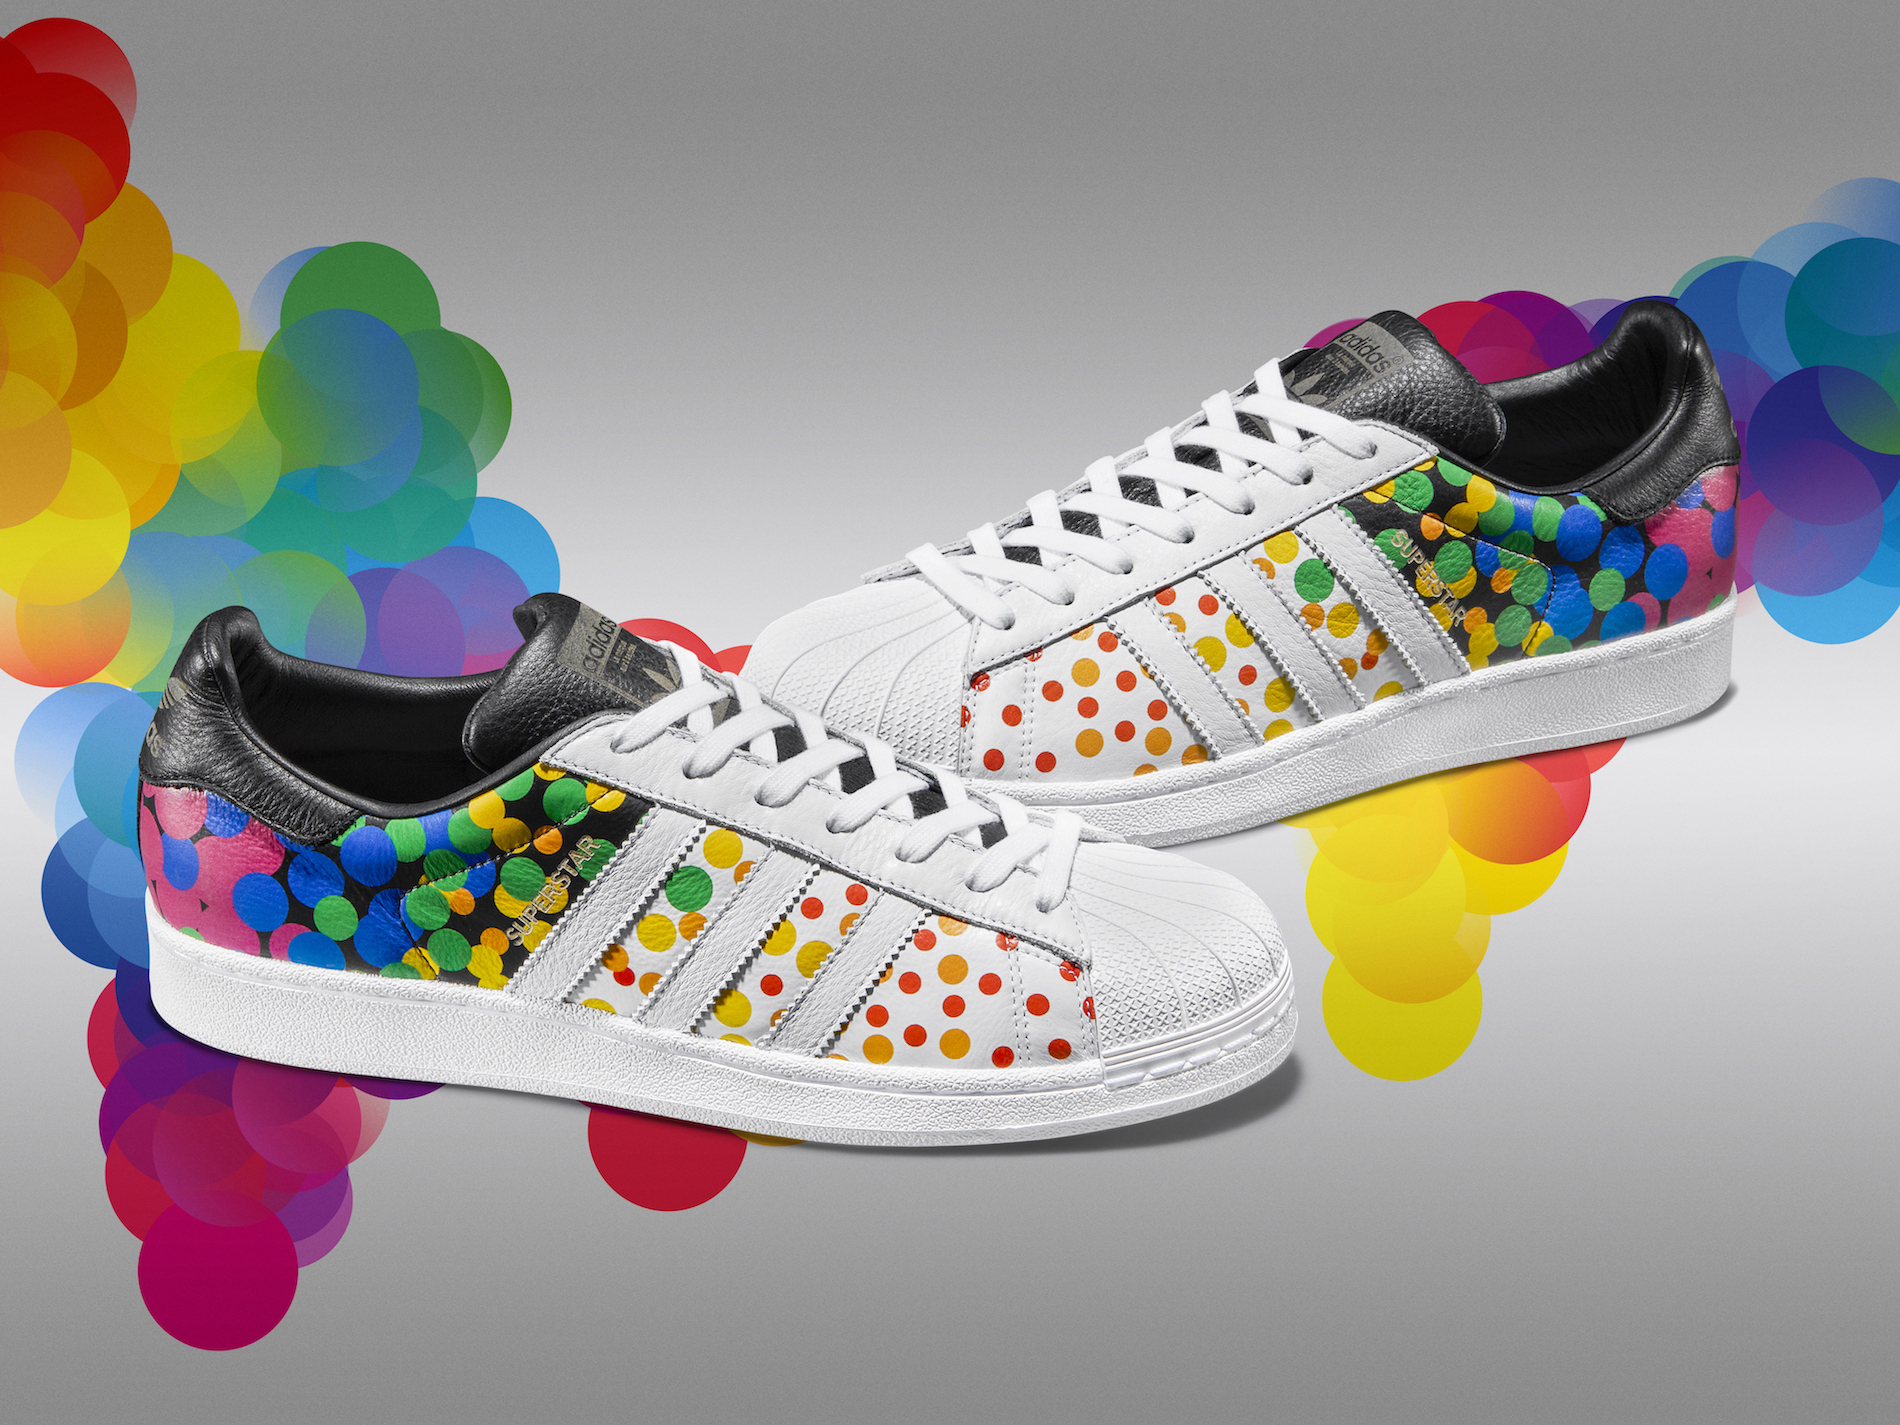 Adidas Superstar weartesters orgullo Pack